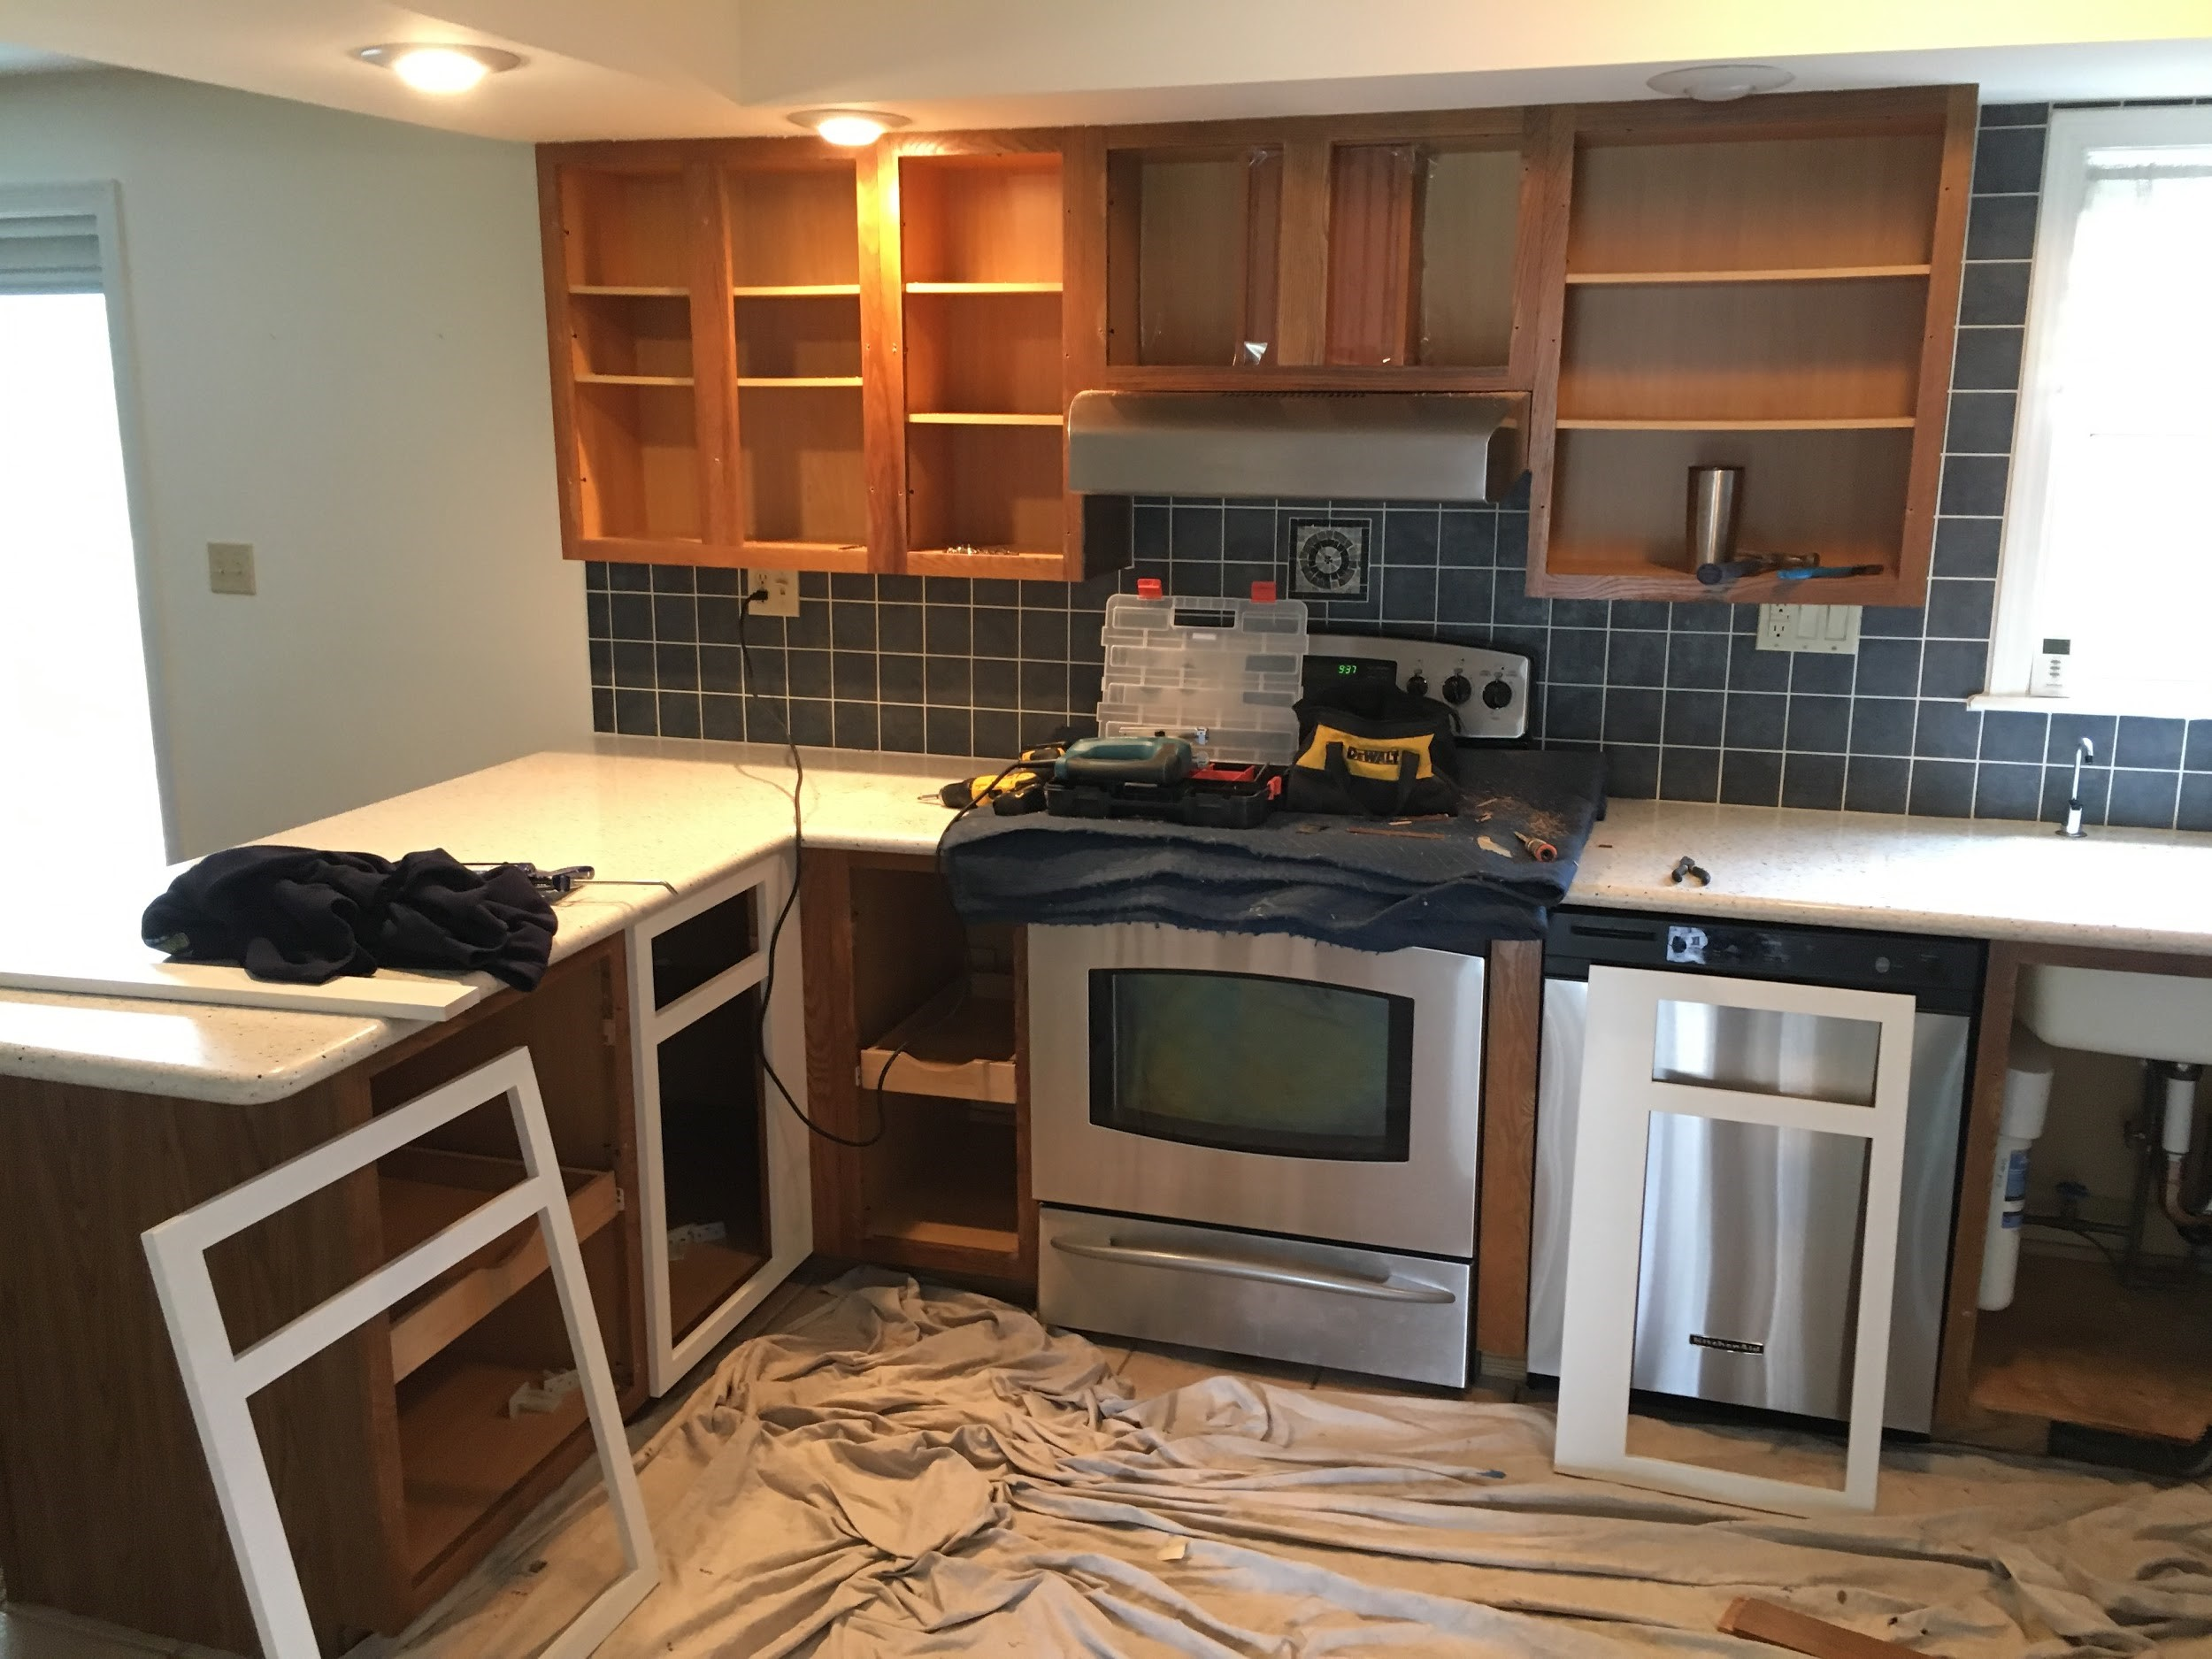 Kitchen Refacing Services In Bucks County Pa Burlington County Nj Capital Kitchen Refacing Llc Www Capitalkitchenrefacing Com